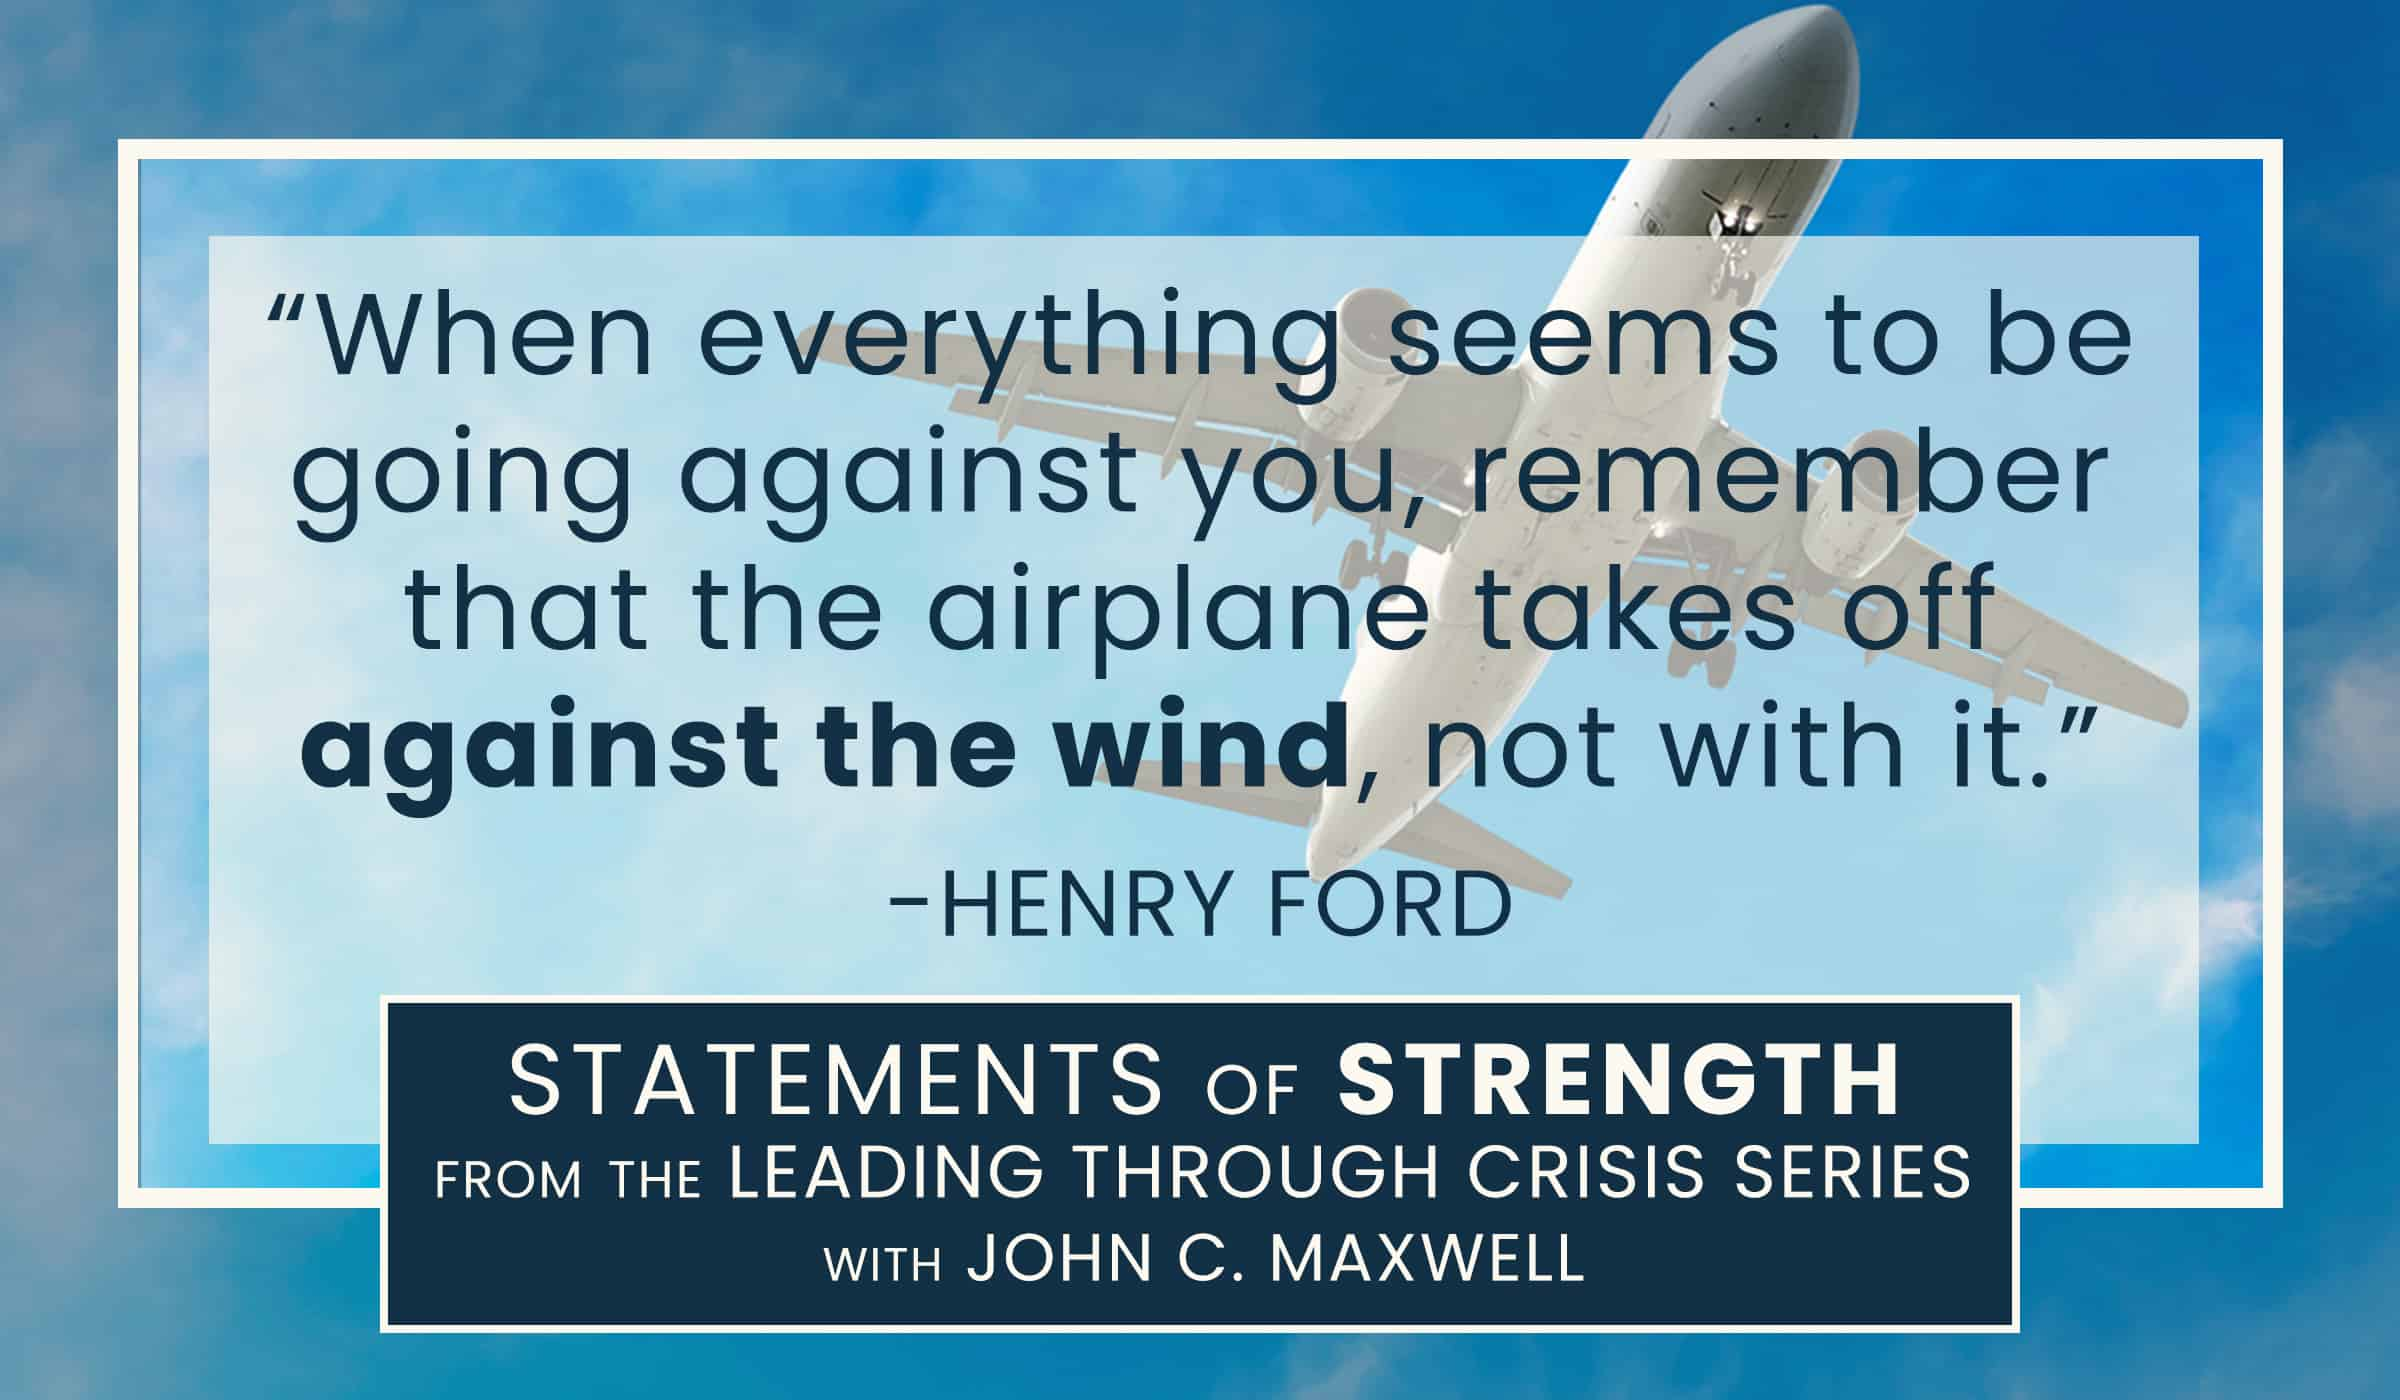 image of quote from henry ford